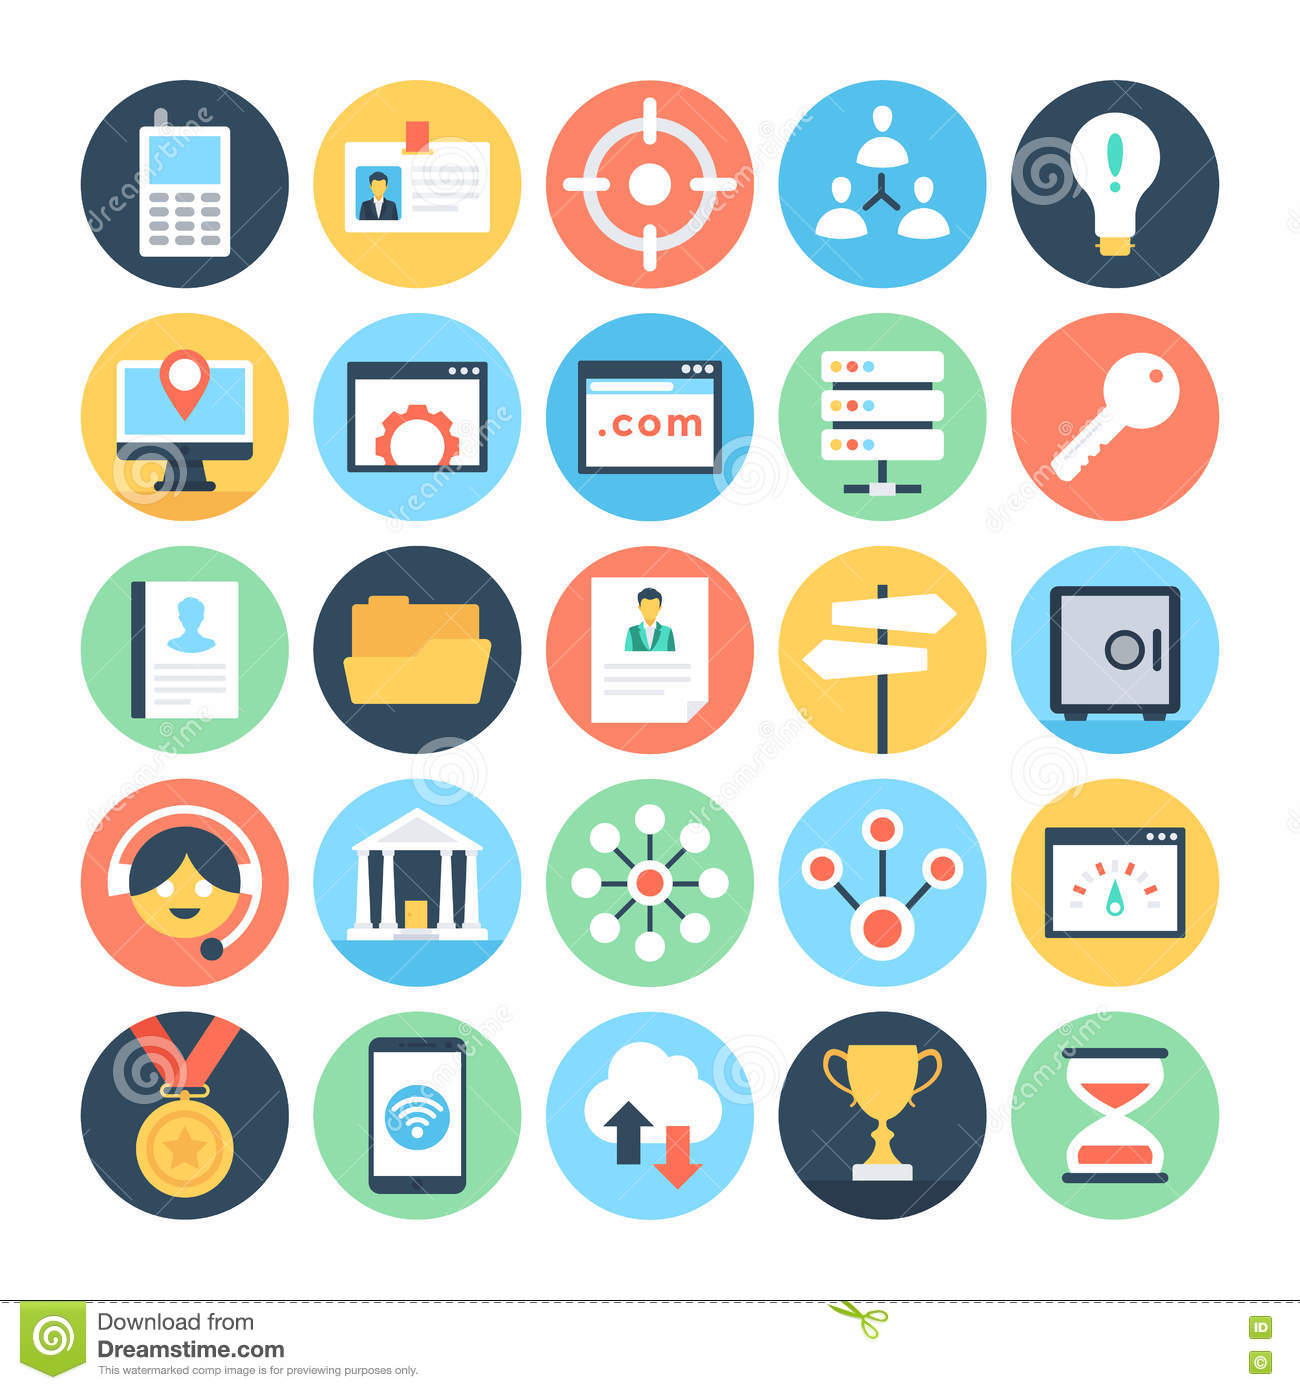 digital marketing vector icons 5 stock illustration illustration of hierarchy navigation 72929386 dreamstime com